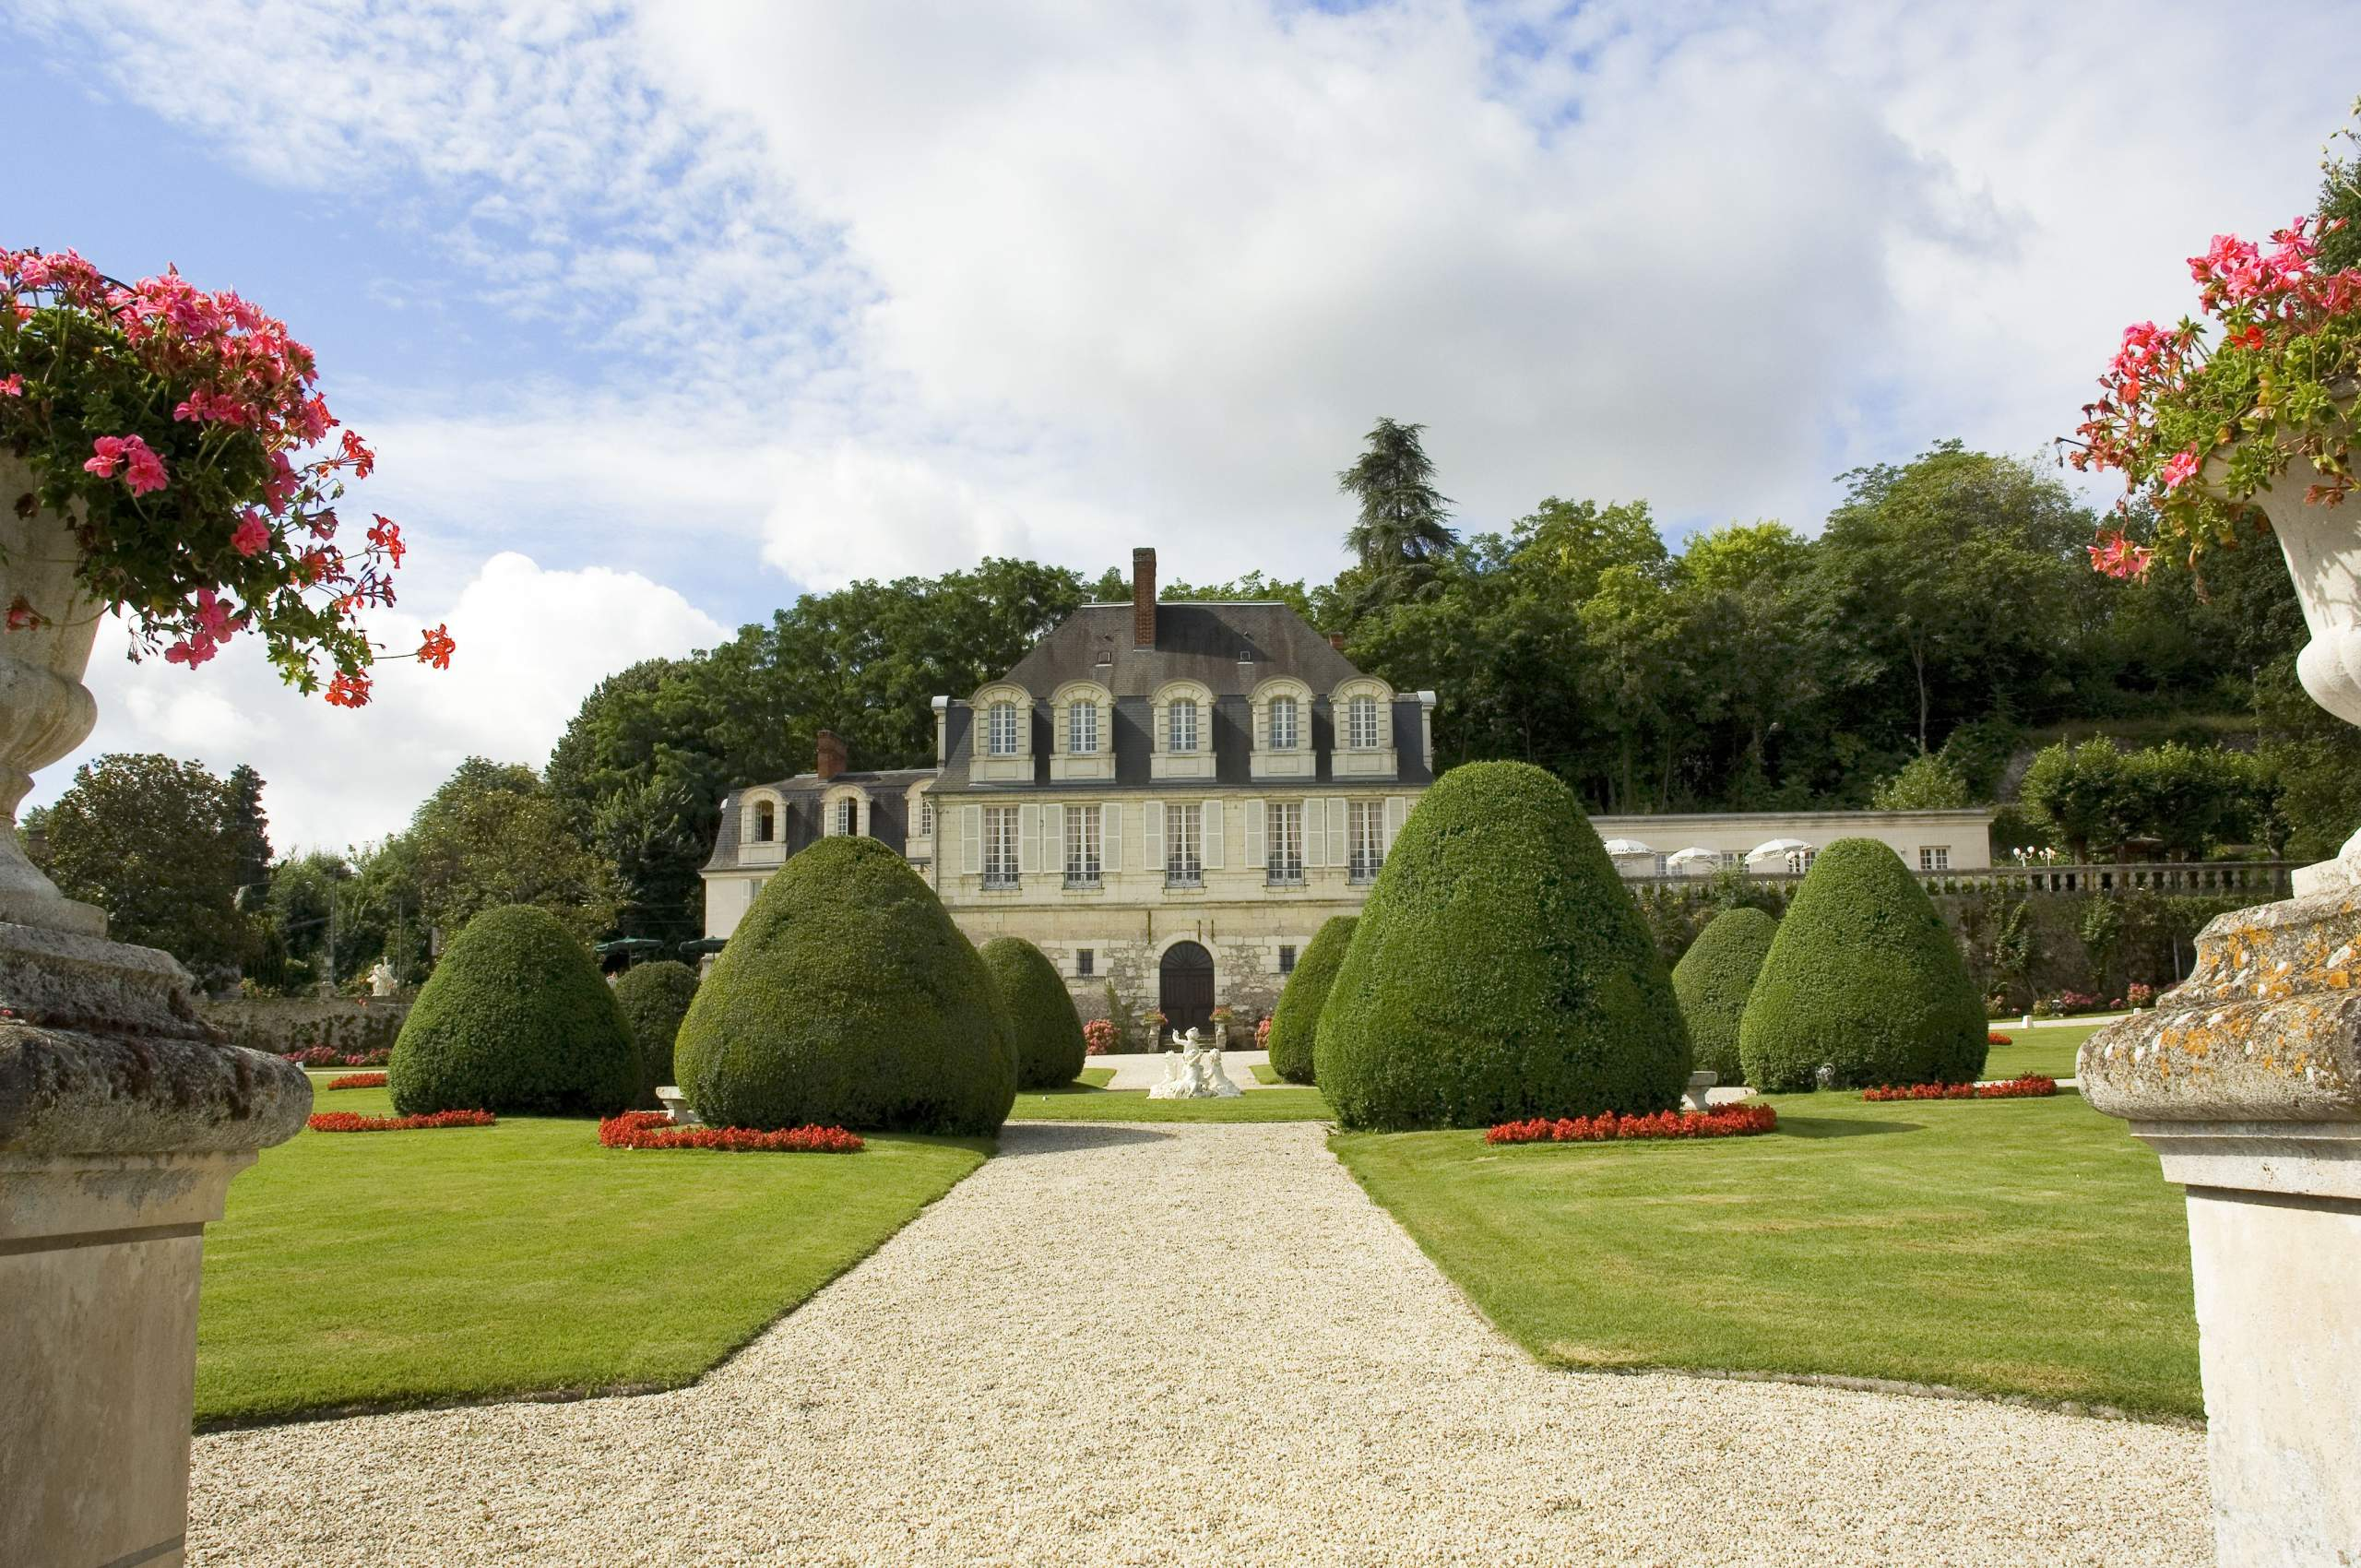 Outside of the château